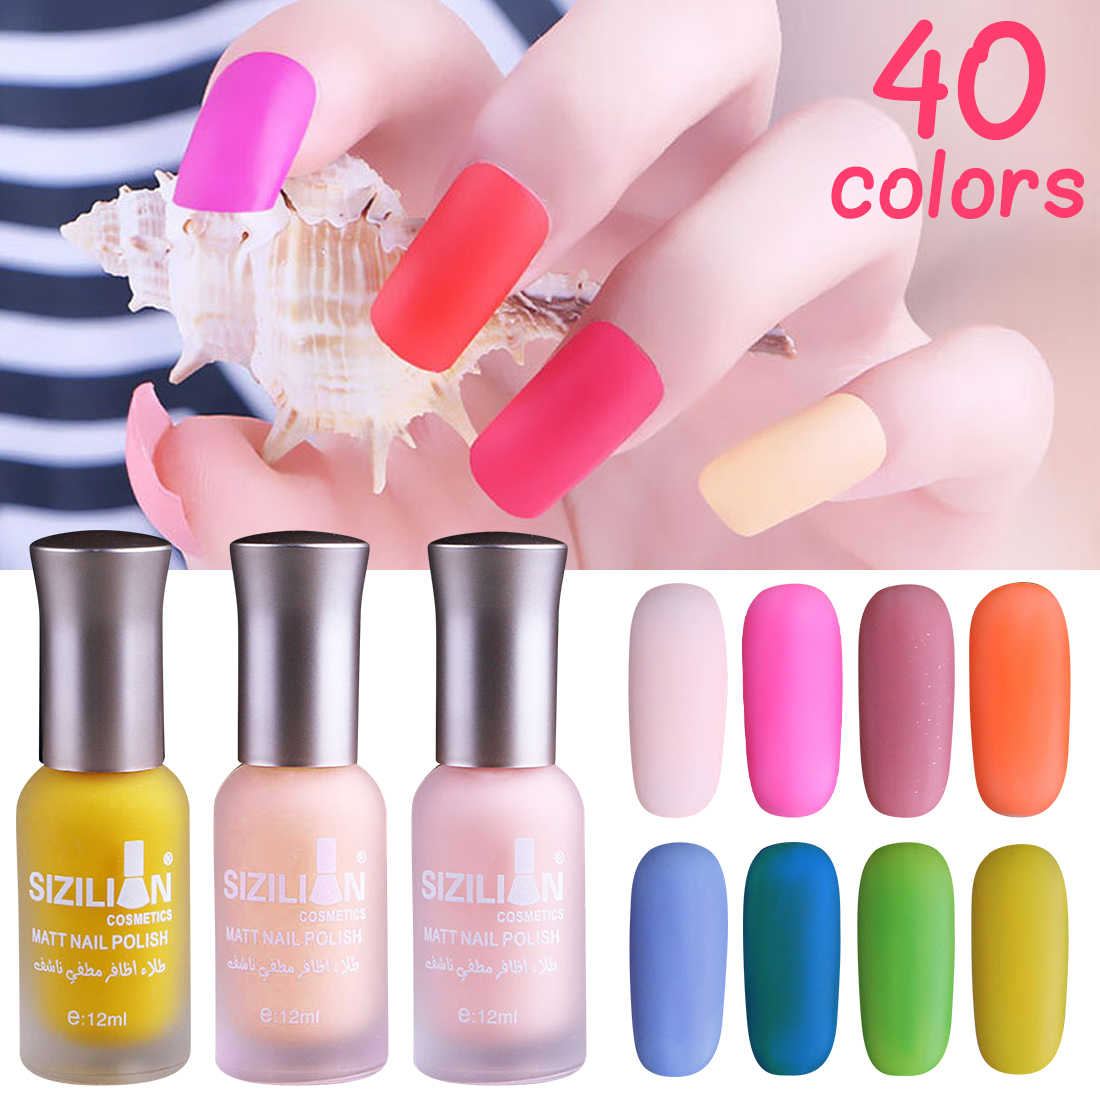 Scrub Nail Polish 12ml matte matte retro velvet durable non-peelable waterproof nude color bean color nail polish